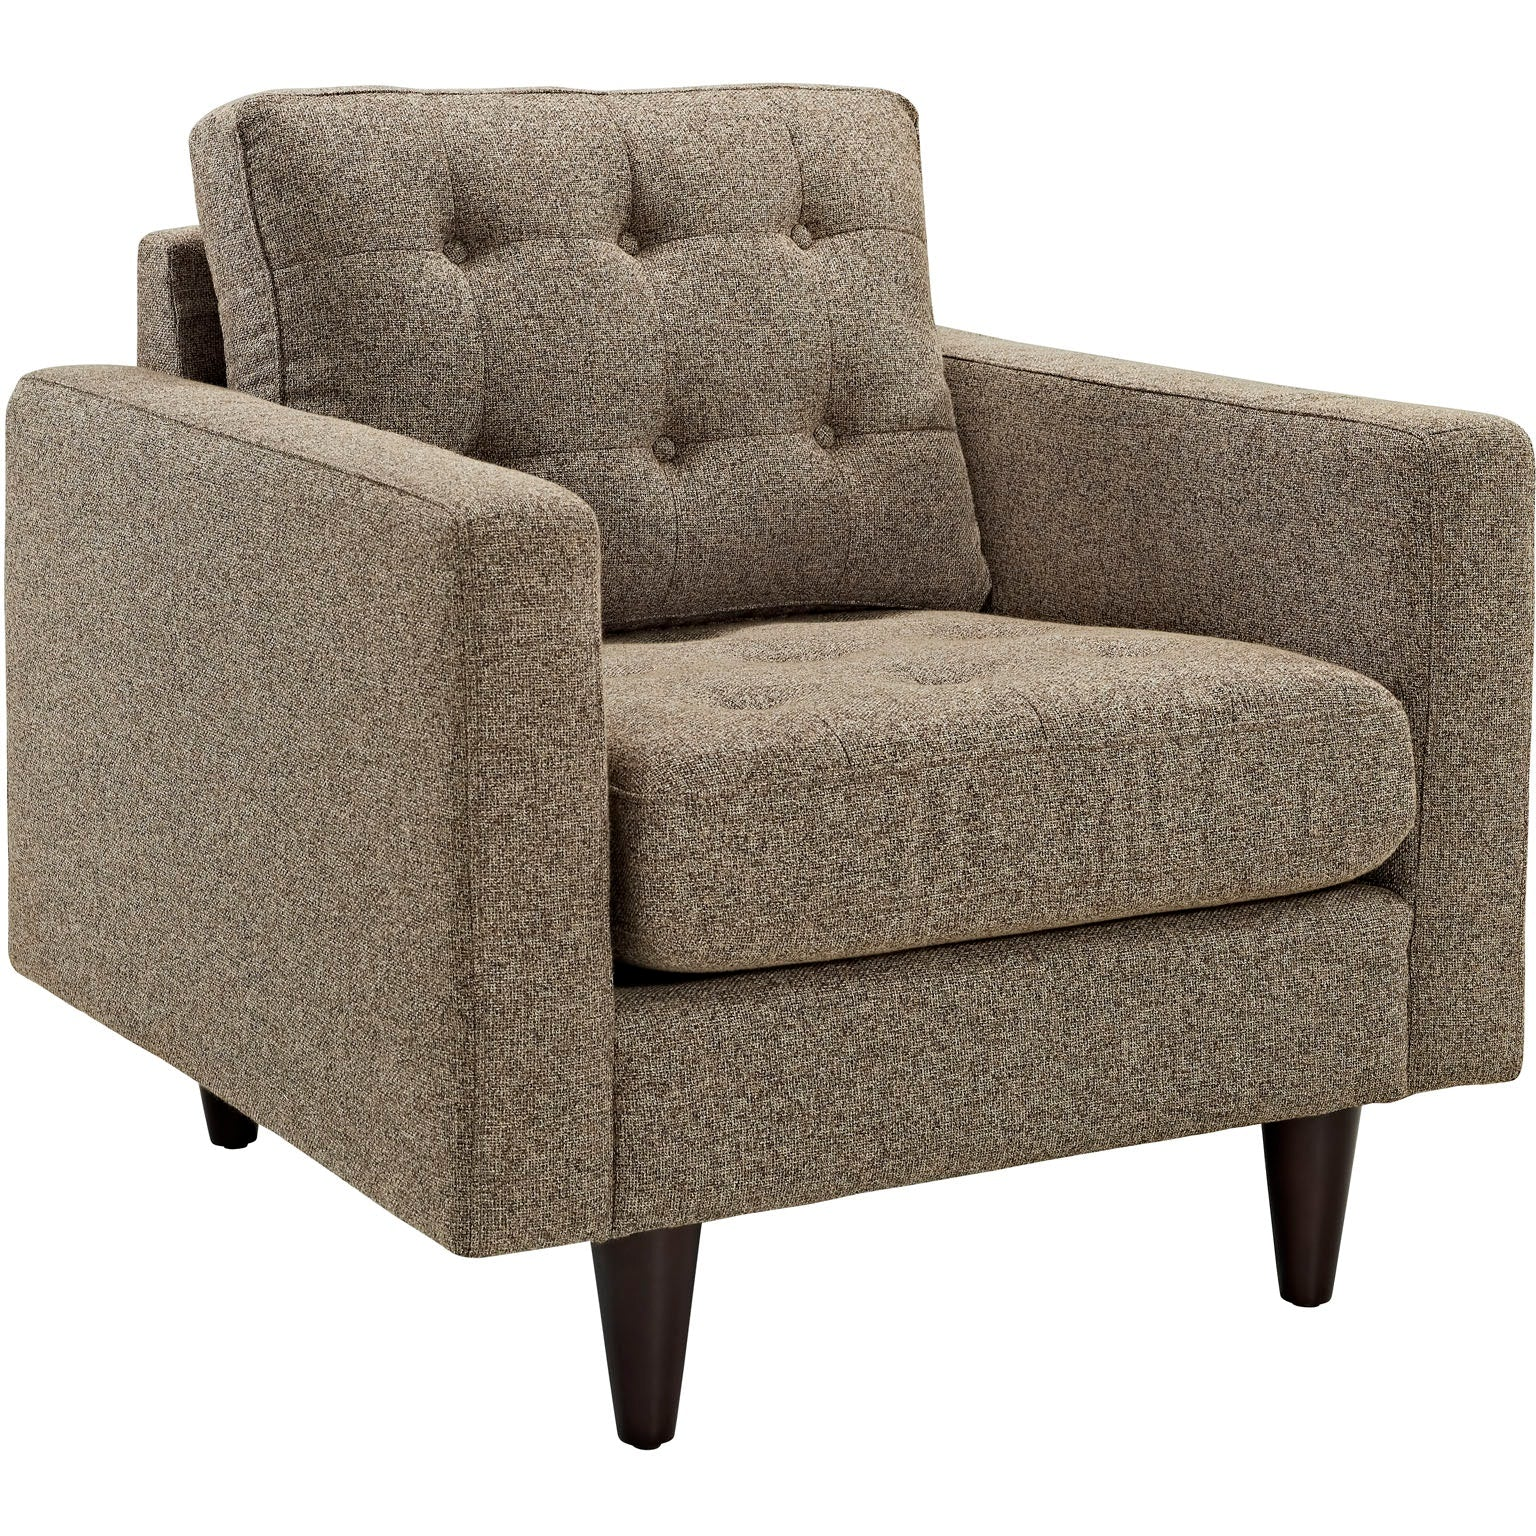 Empress Sofa and Armchairs Set of 3 - Oatmeal